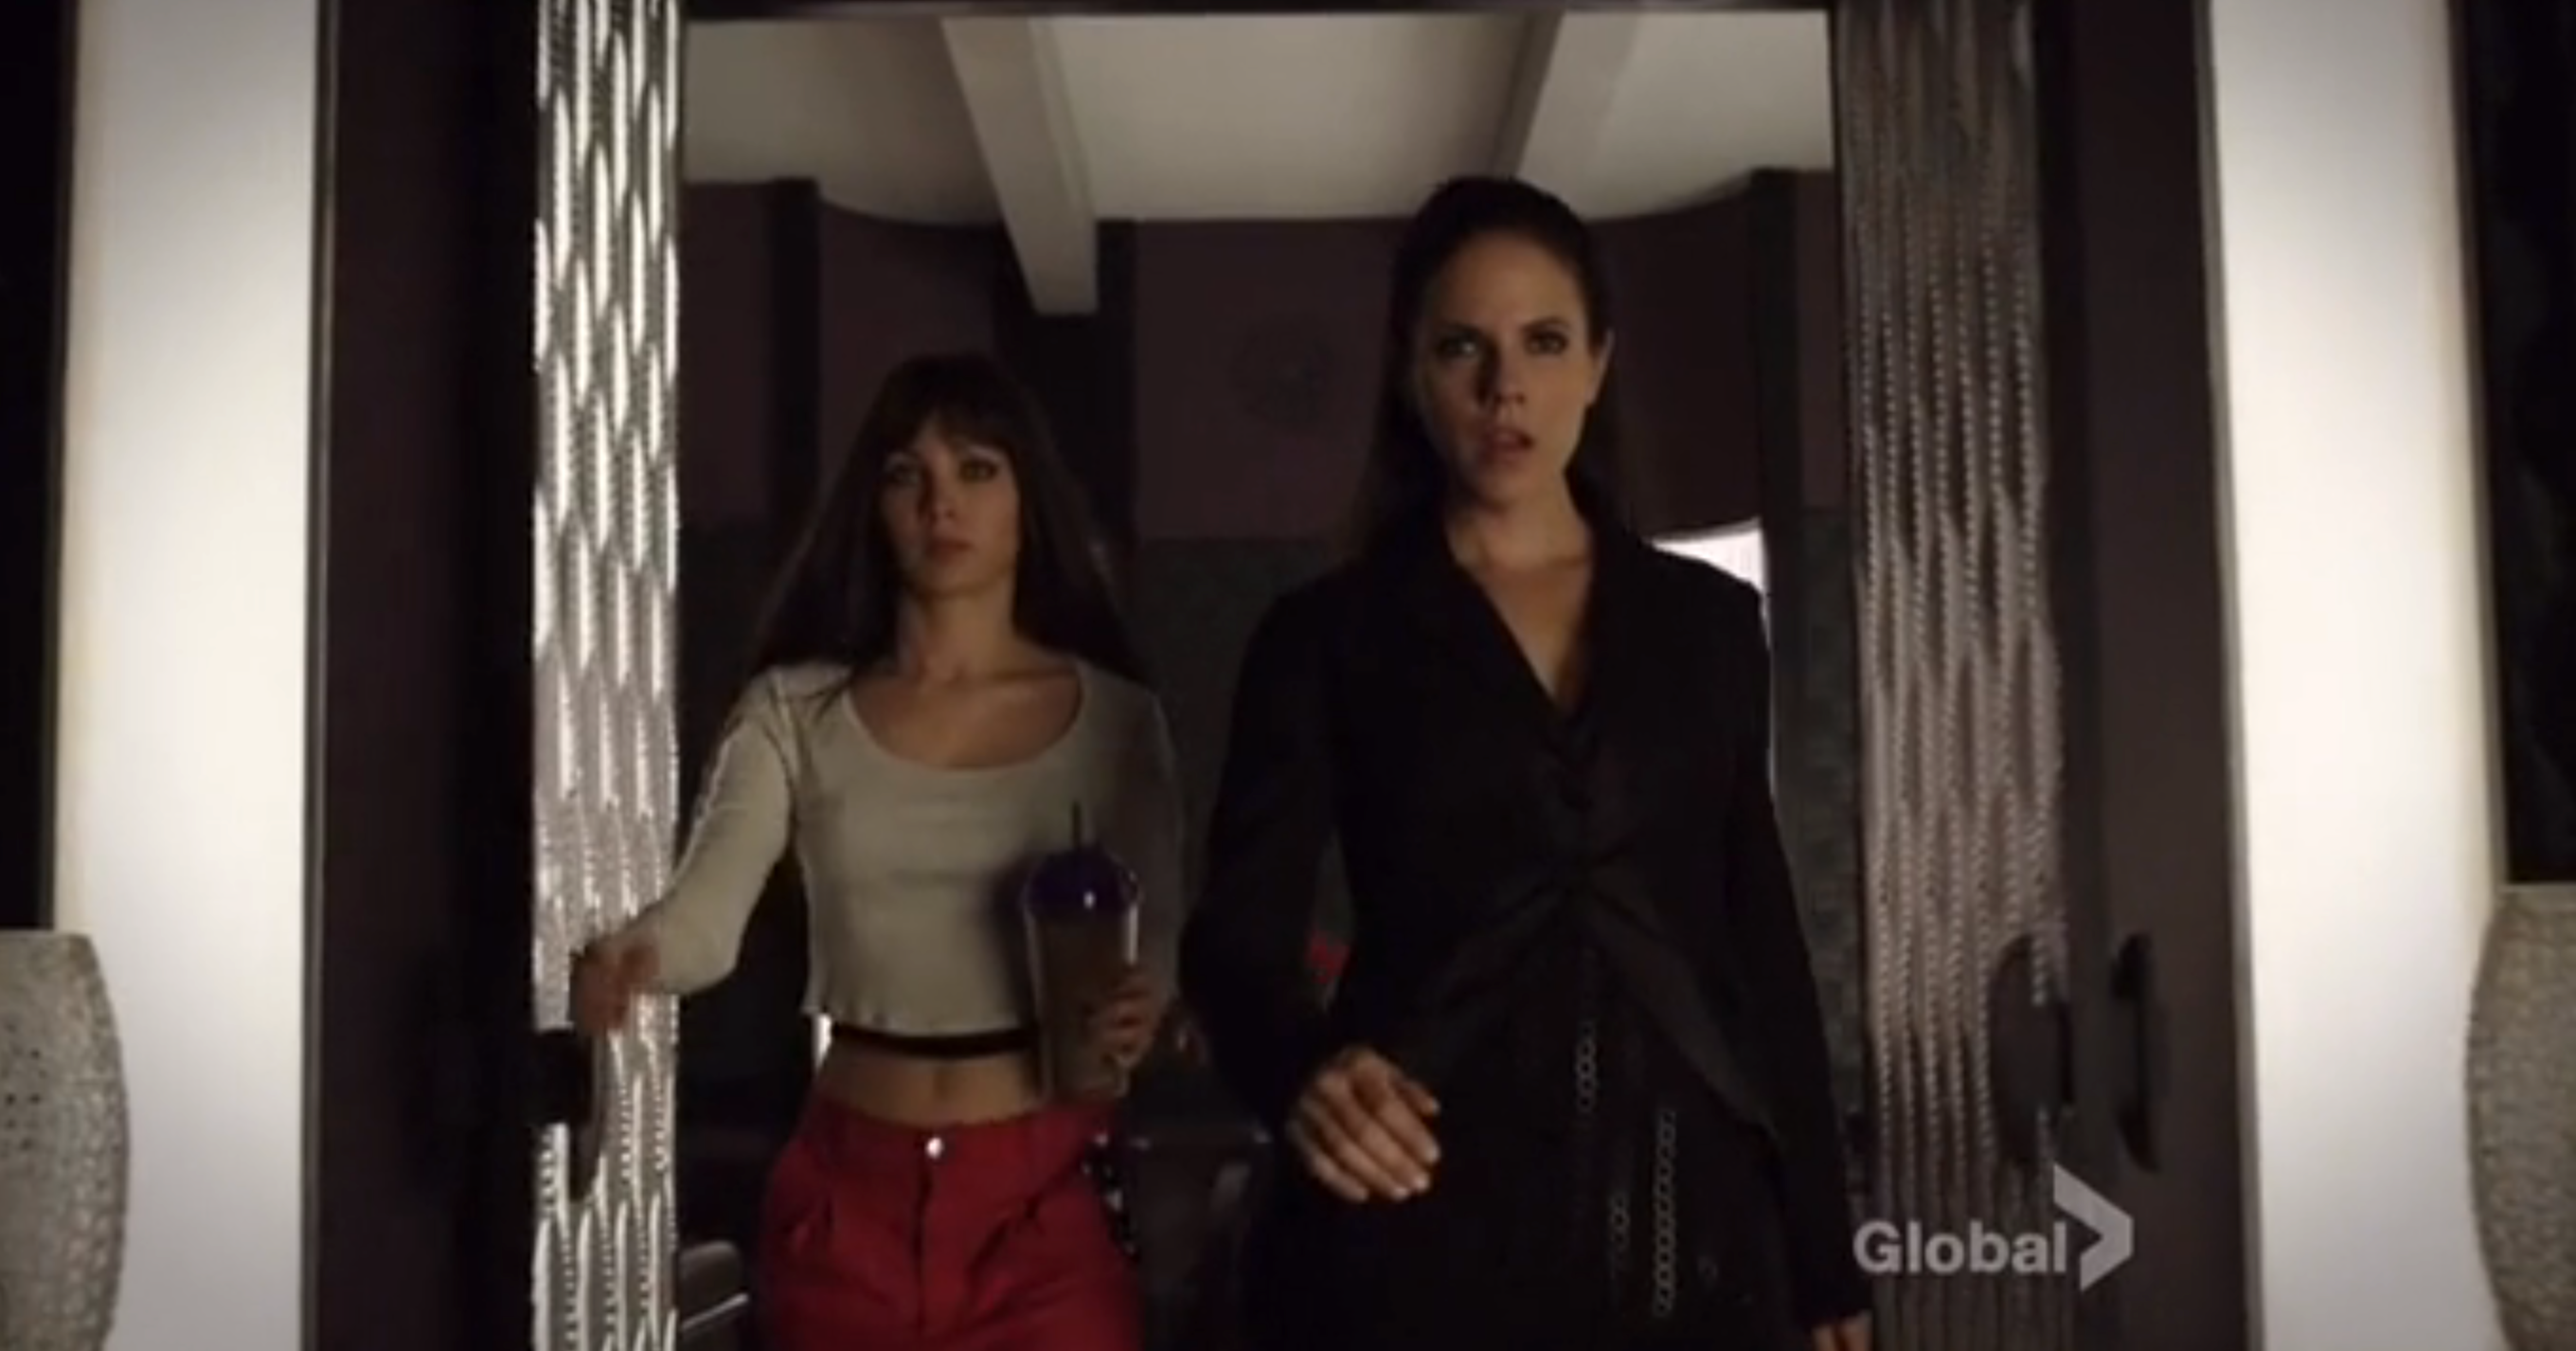 lost girl season 4 review � the good the bad amp the